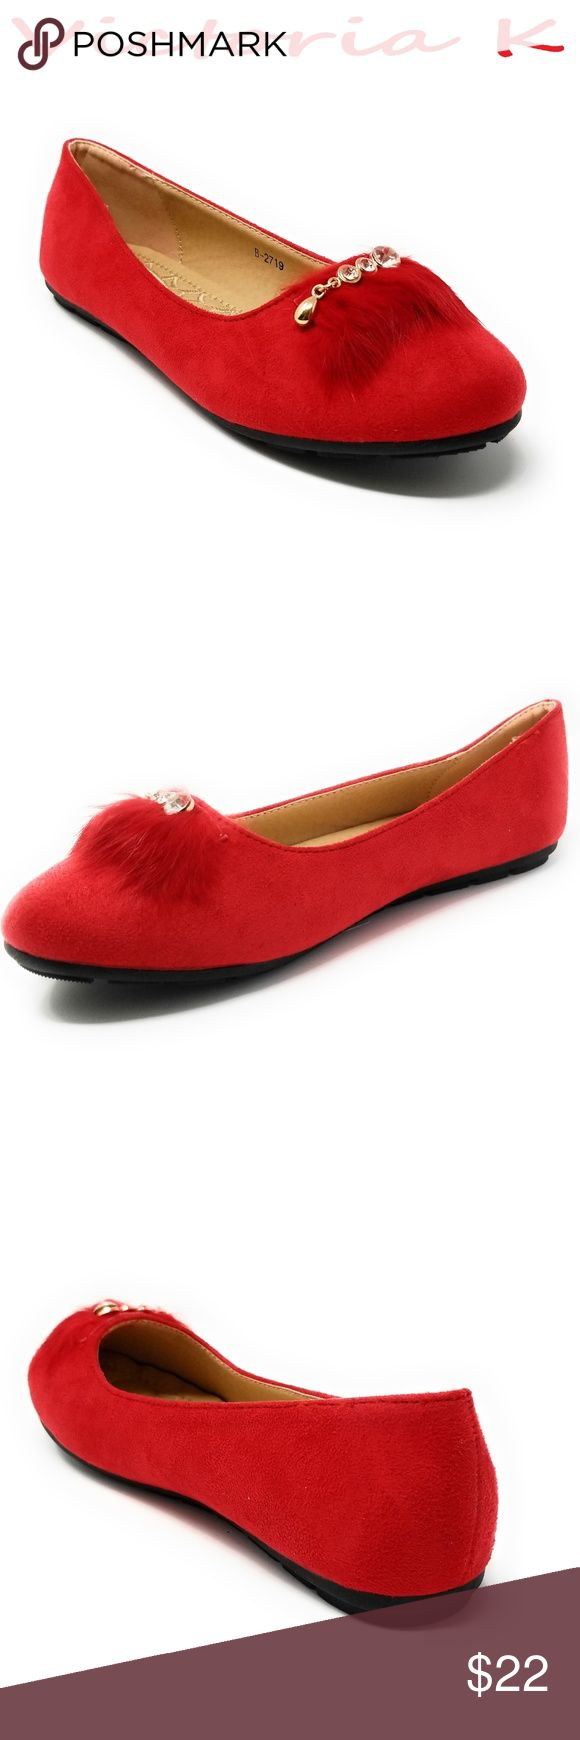 """Women Feather Embellished Buckle Flats, B-2719 Red Brand new woman beautiful flats with a feather embellished crystal studded buckle. Diligently crafted from glossy faux leather upper with extra soft insoles and a textured rubberized outer sole for traction.  Measurements: sizes 6 through 8 are true to size. Sizes 8.5 - 11 run small. Standard 3 """" width. Size 8 measures 9.5 inches, sz 8.5 - 9 3/4"""", sz 9 - 10"""", sz 10 - 10.5"""", size 11 fits a true size 9.5 wearer. Slip it on and make a true…"""